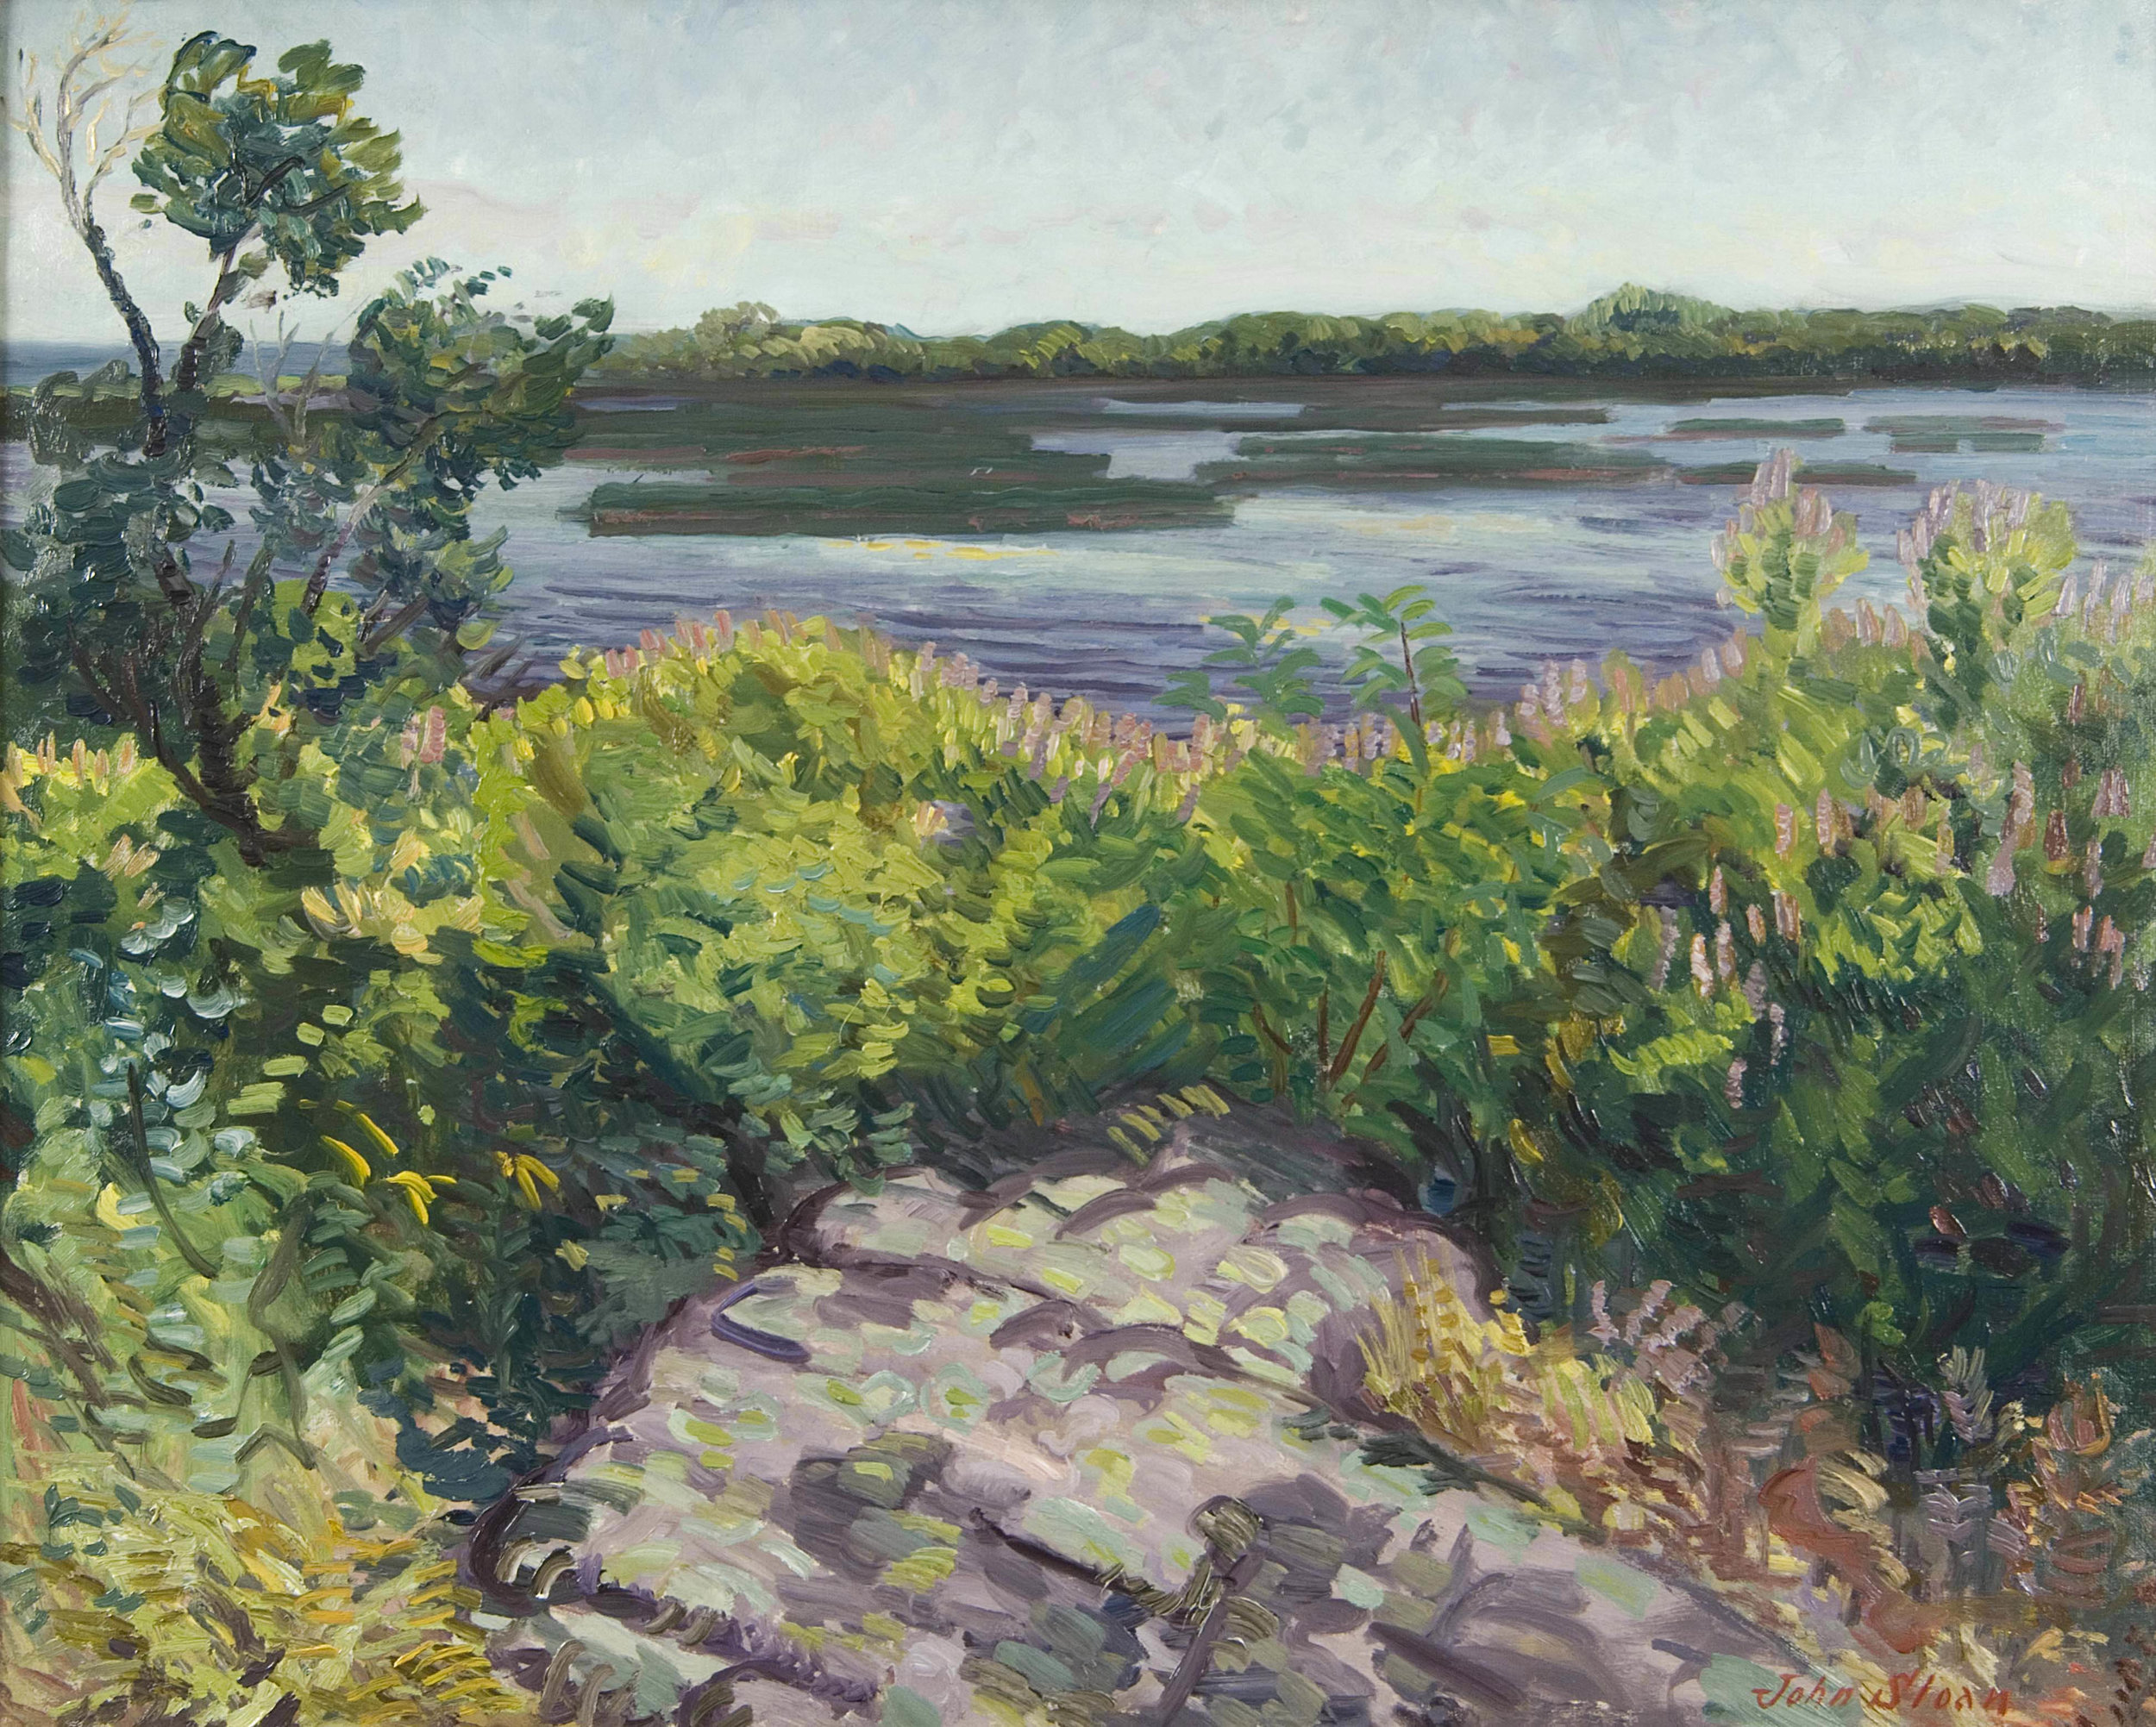 Image of view of Niles Pond in Gloucester, Massachusetts by John Sloan